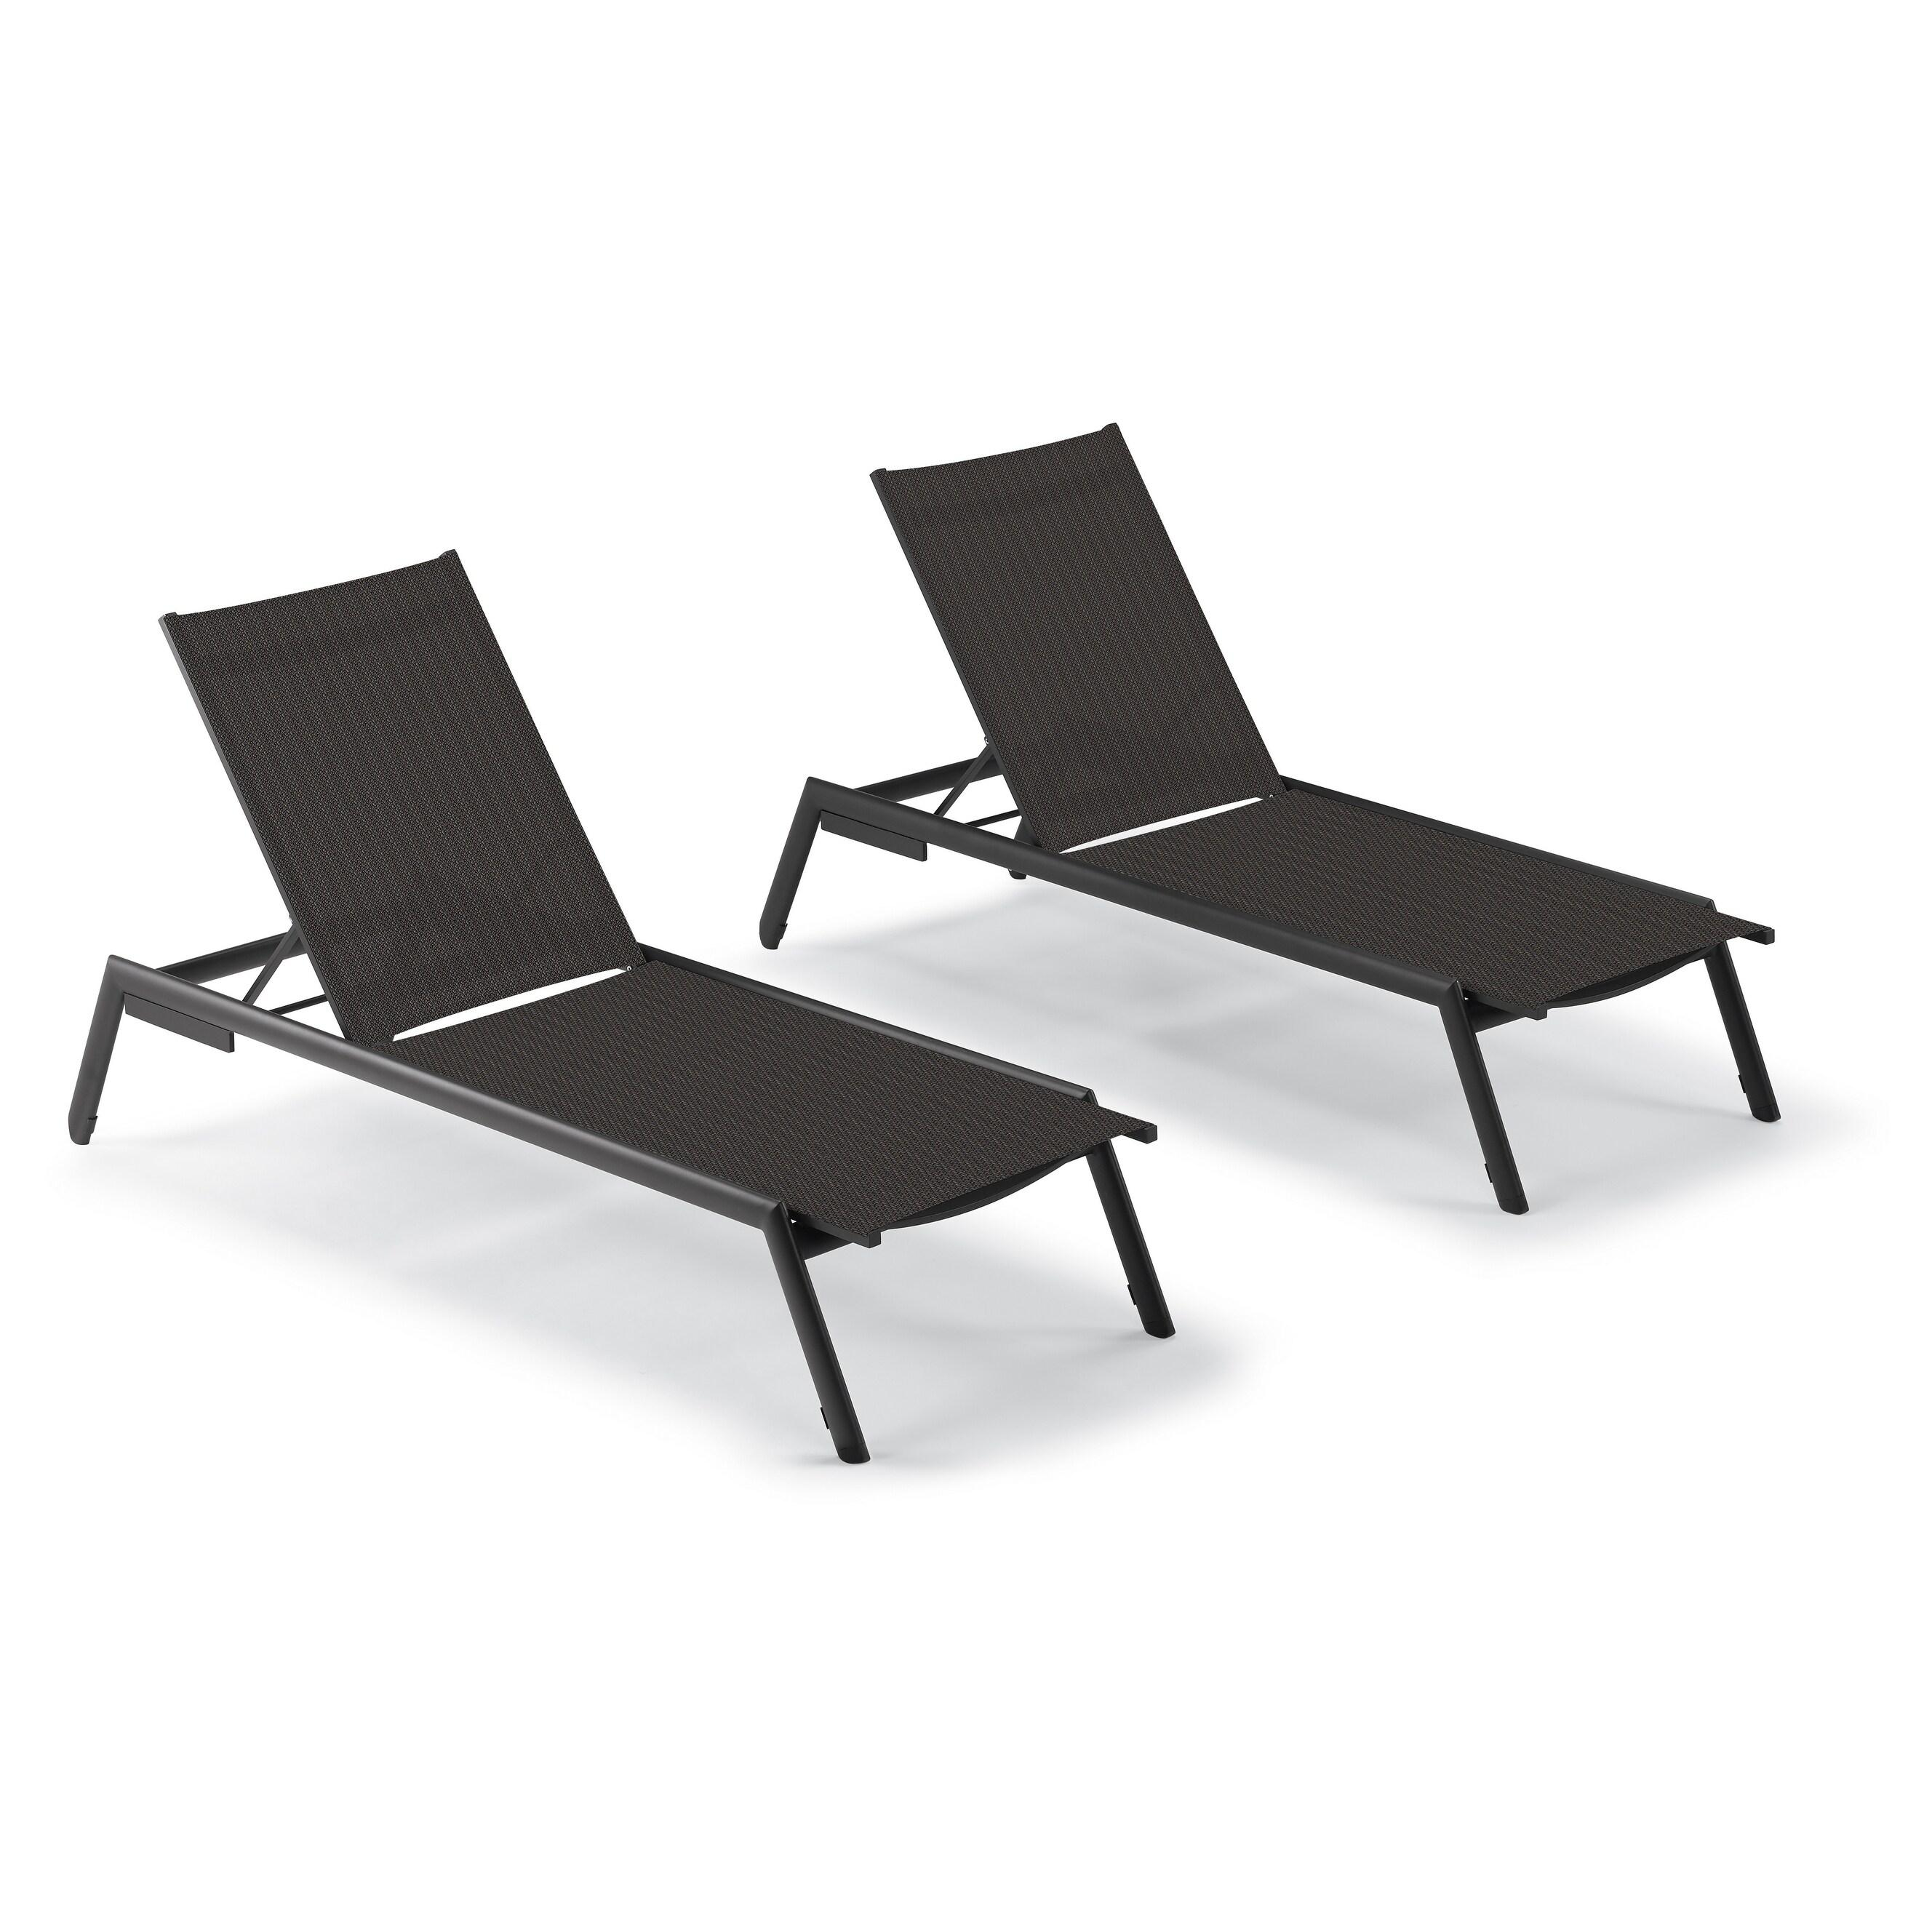 Eila Carbon Armless Chaise Lounge Chairs (Set of 2) by Havenside Home